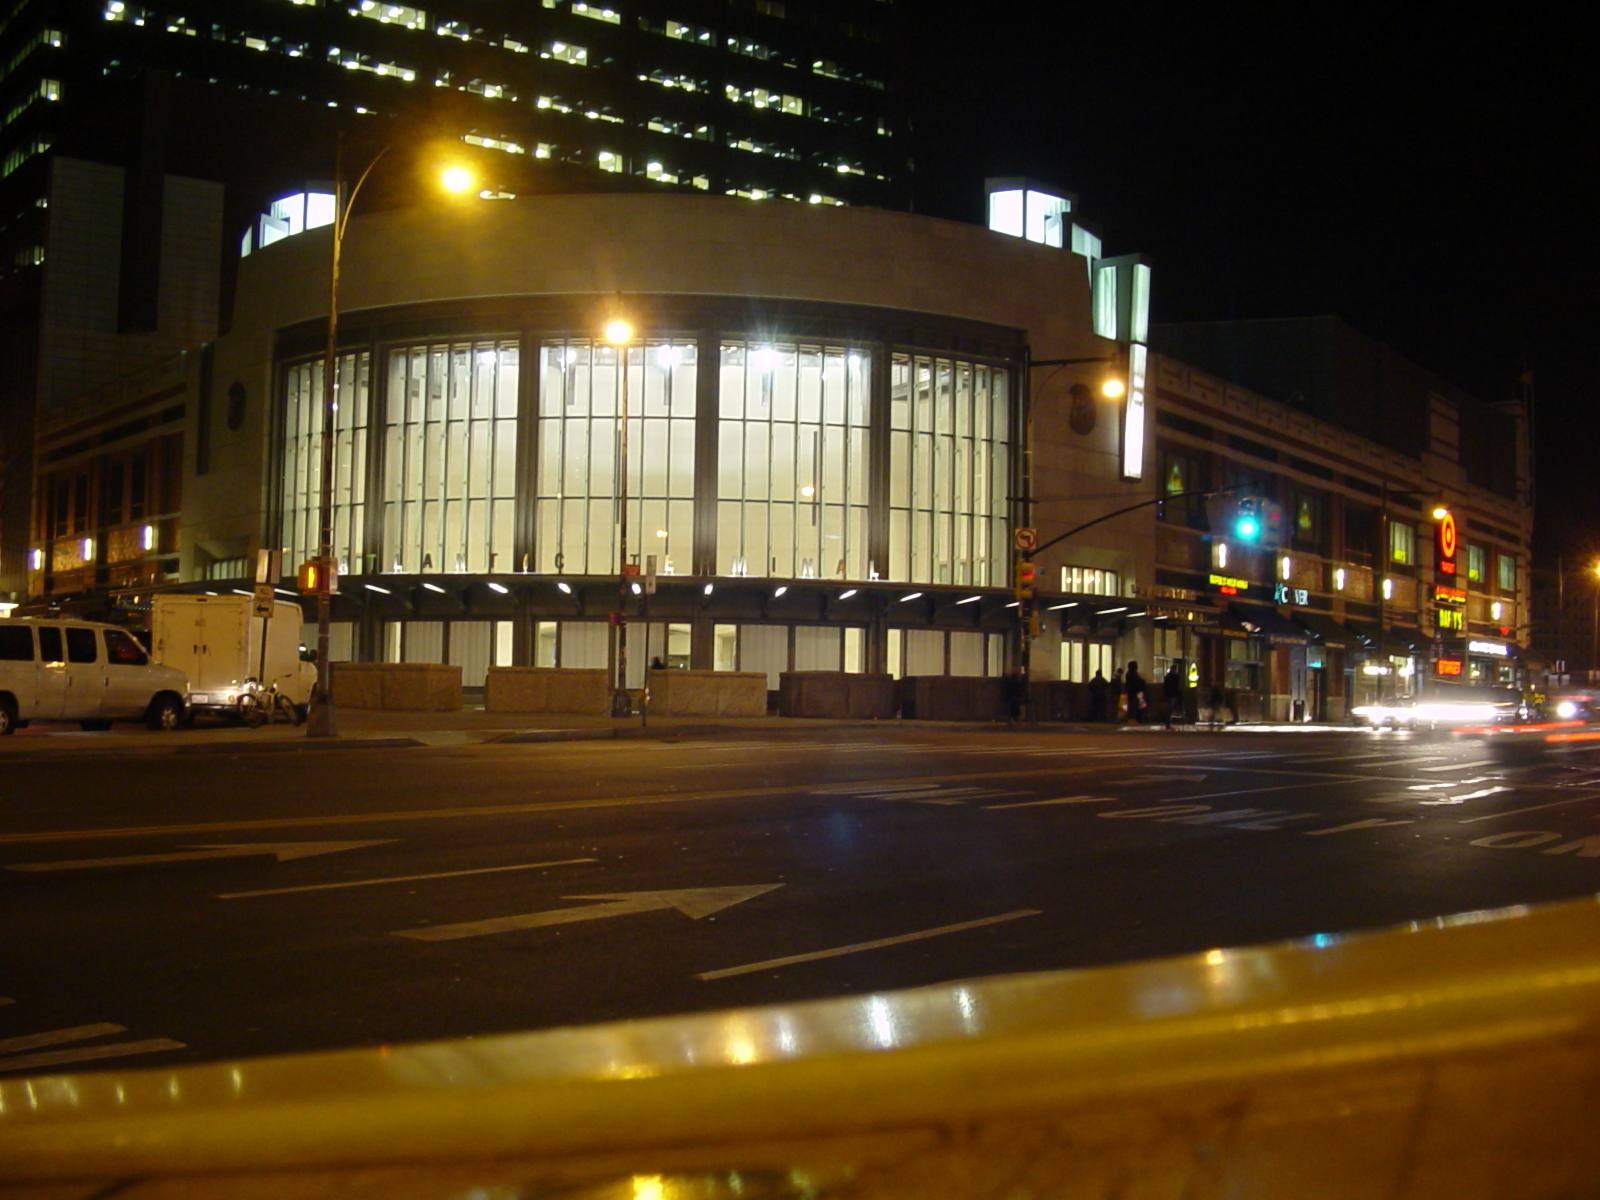 The entrance pavilion to the Atlantic Terminal in Brooklyn. Image captured by user TLK in 3, licensed by CC BY-SA 3.0.